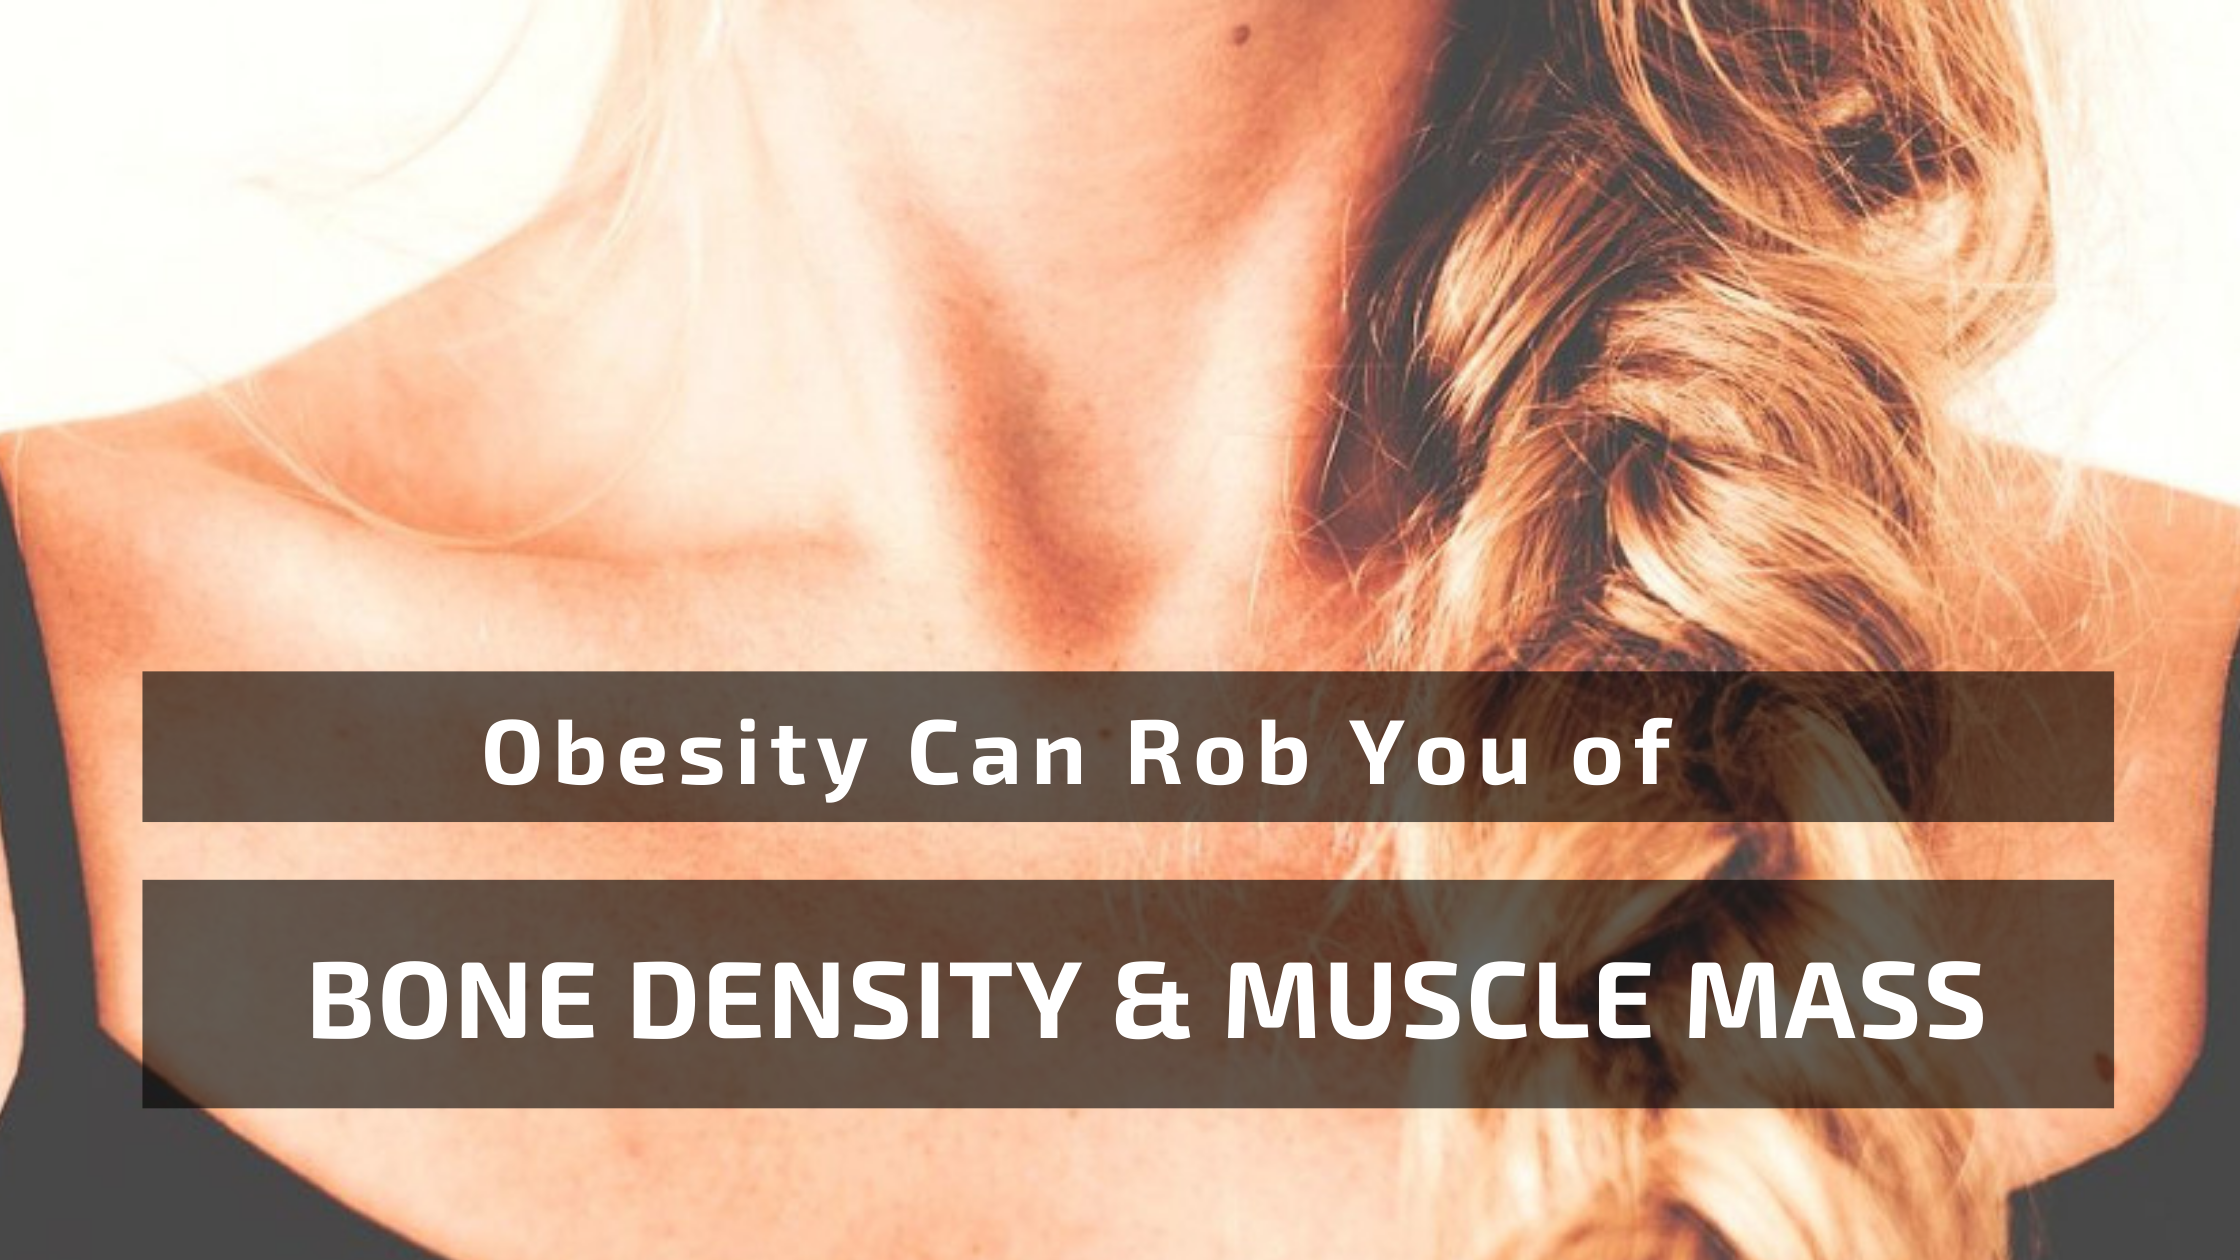 Obesity Can Exacerbate Bone And Muscle Density Loss